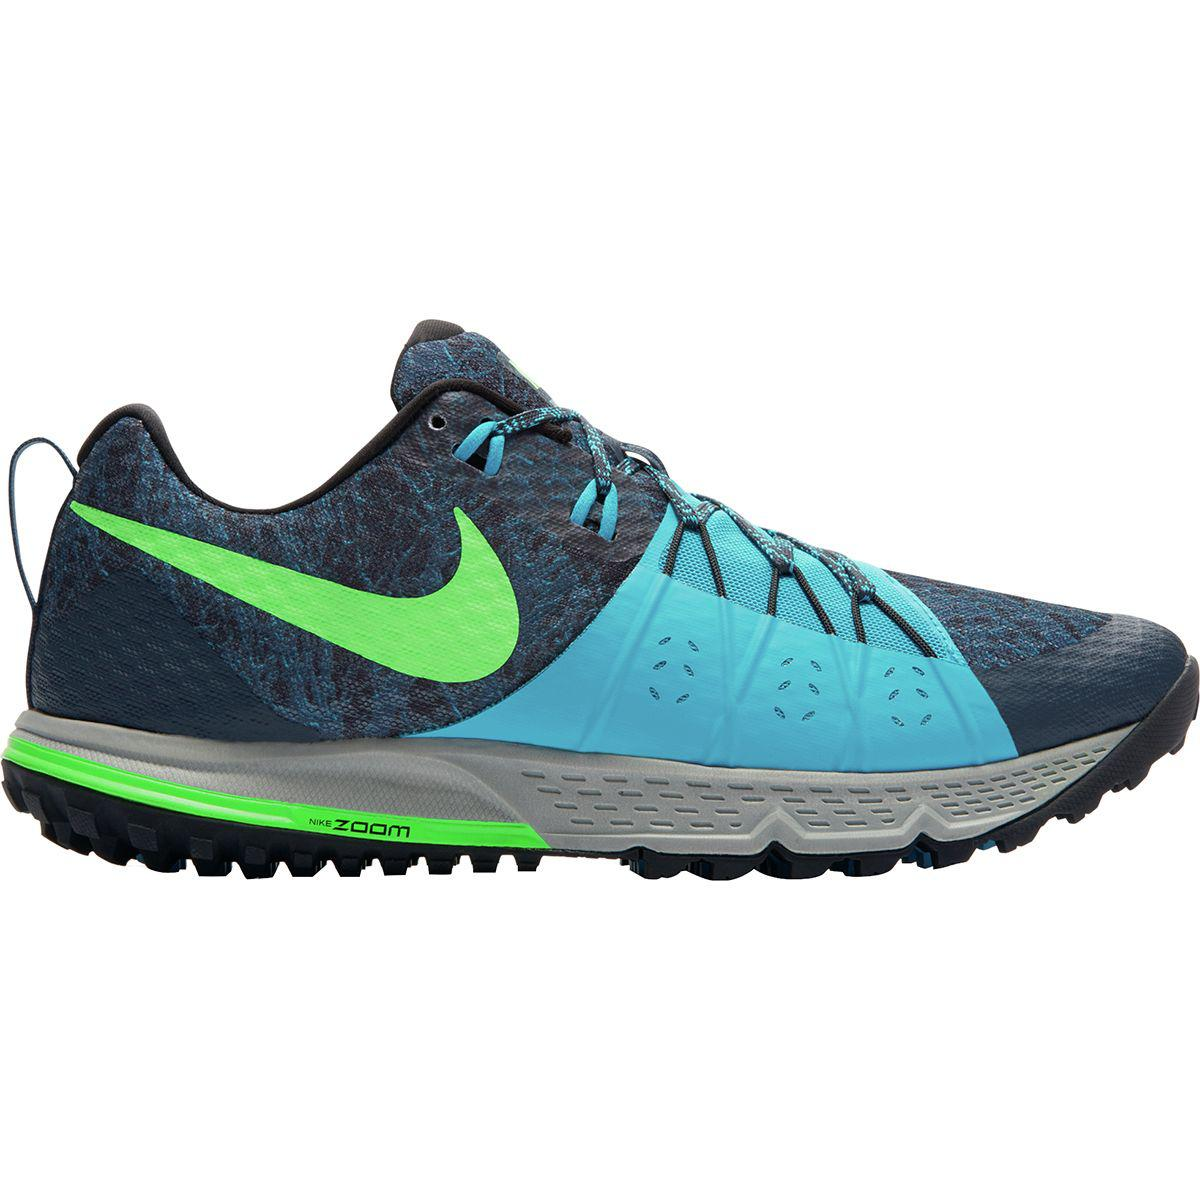 Lyst - Nike Air Zoom Wildhorse 4 Trail Running Shoe in Blue for Men 152a4256f